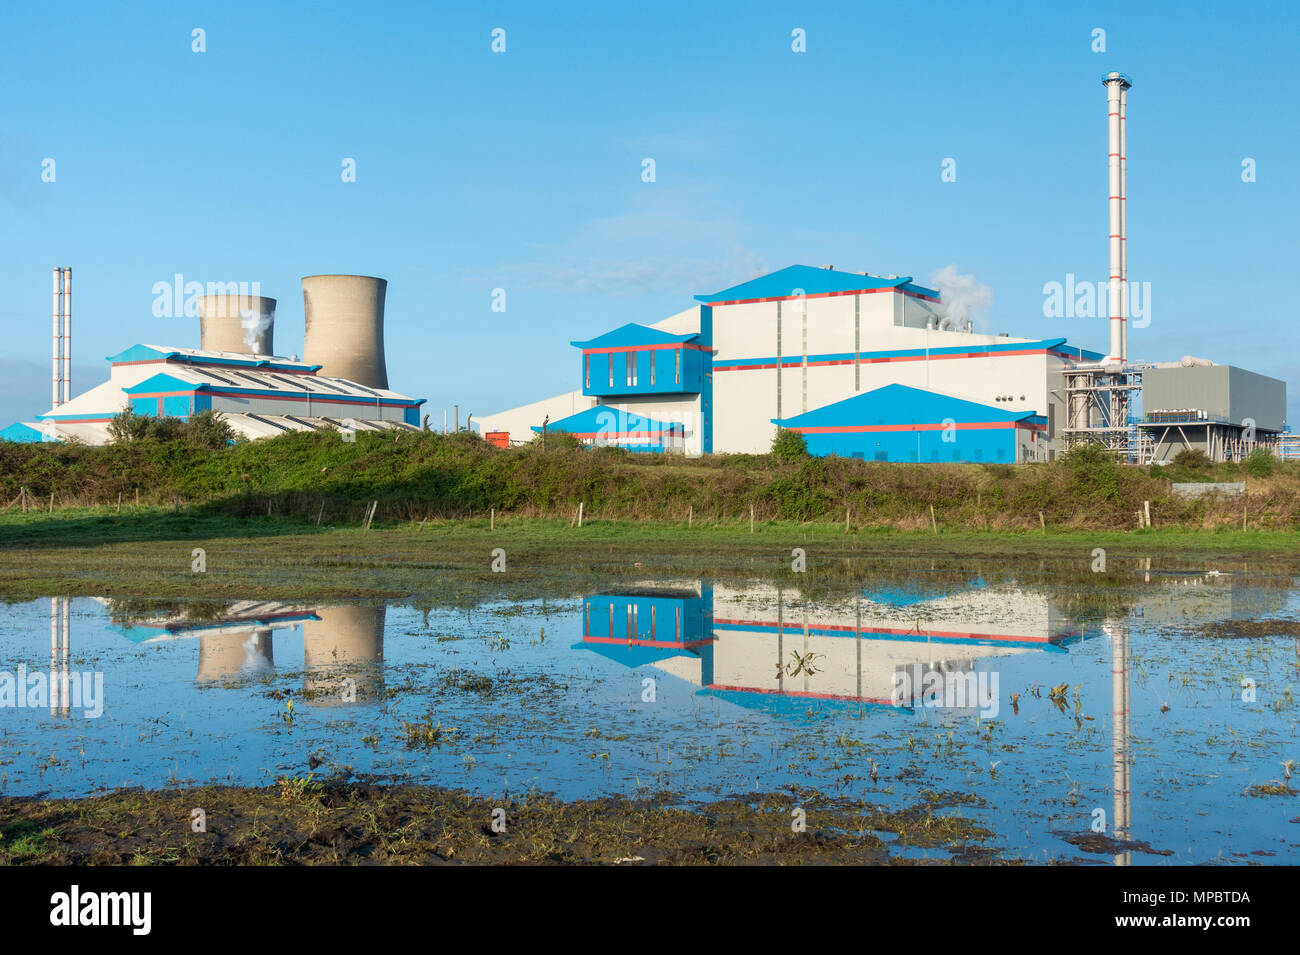 Sita Suez Stock Photos Amp Sita Suez Stock Images Alamy